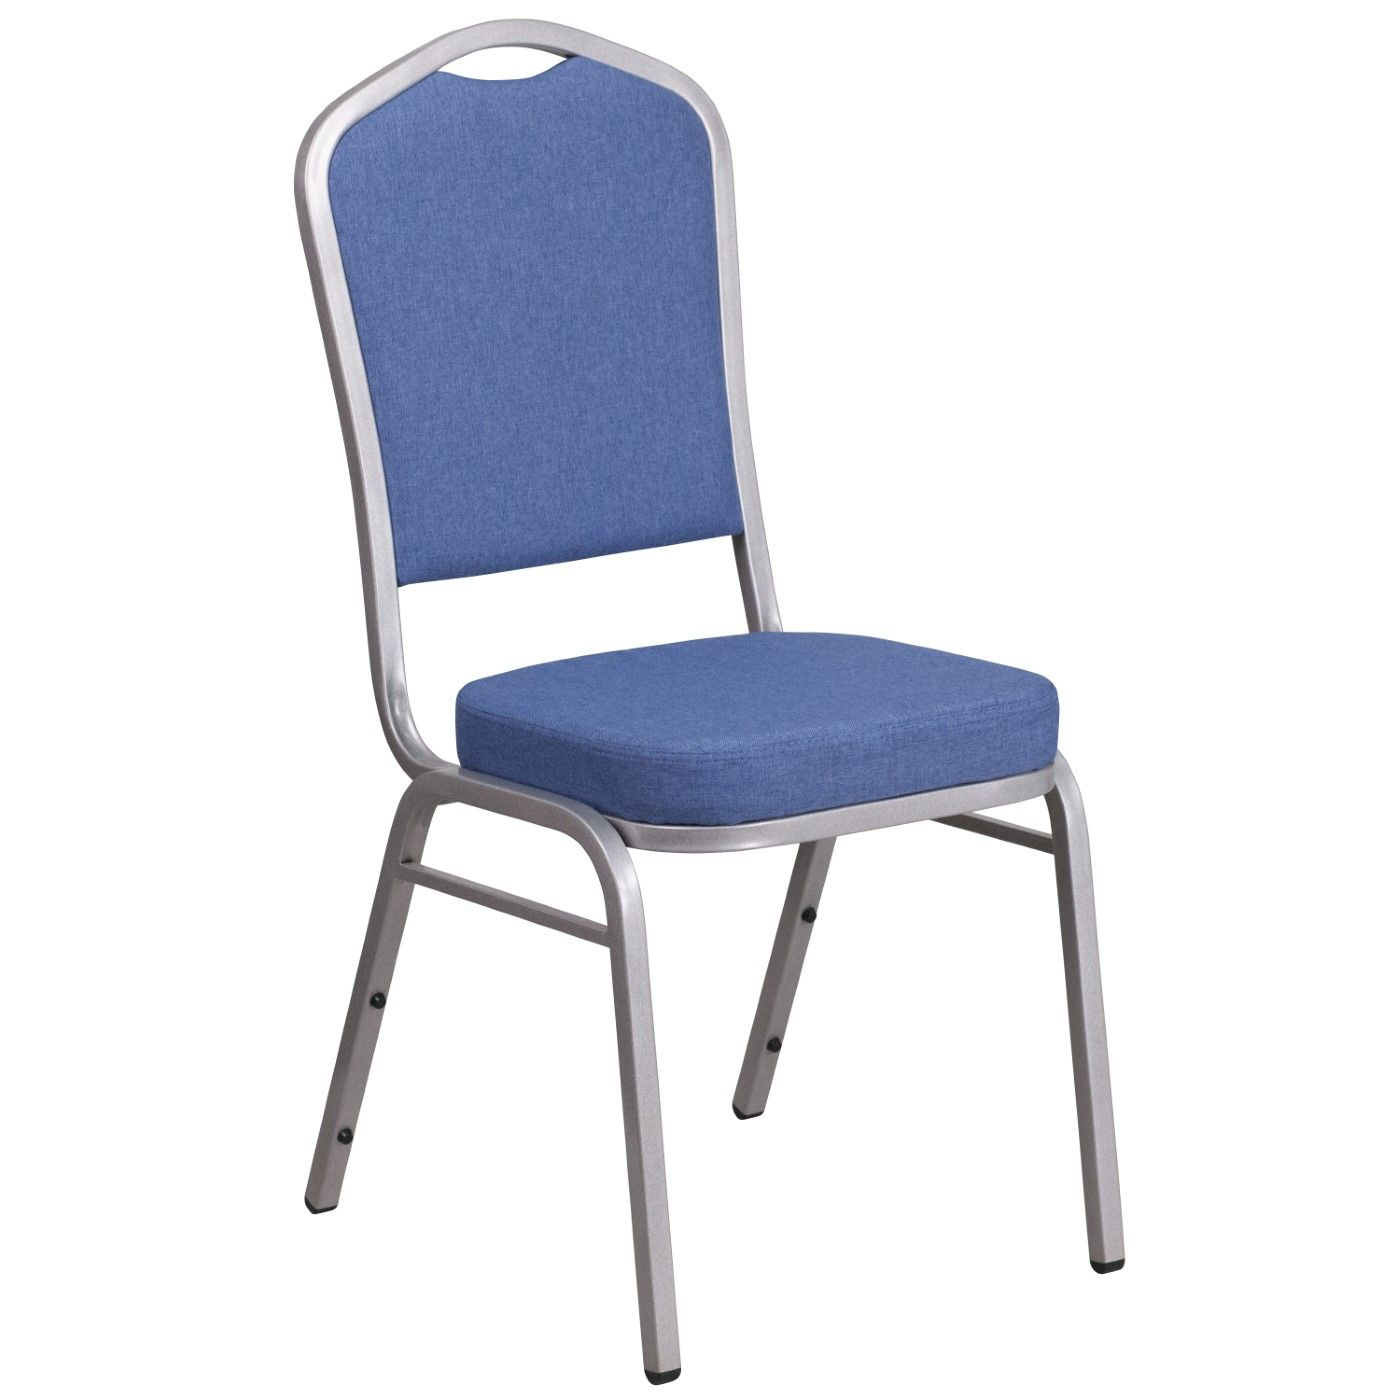 TOUGH ENOUGH Series Crown Back Stacking Banquet Chair in Blue Fabric - Silver Frame